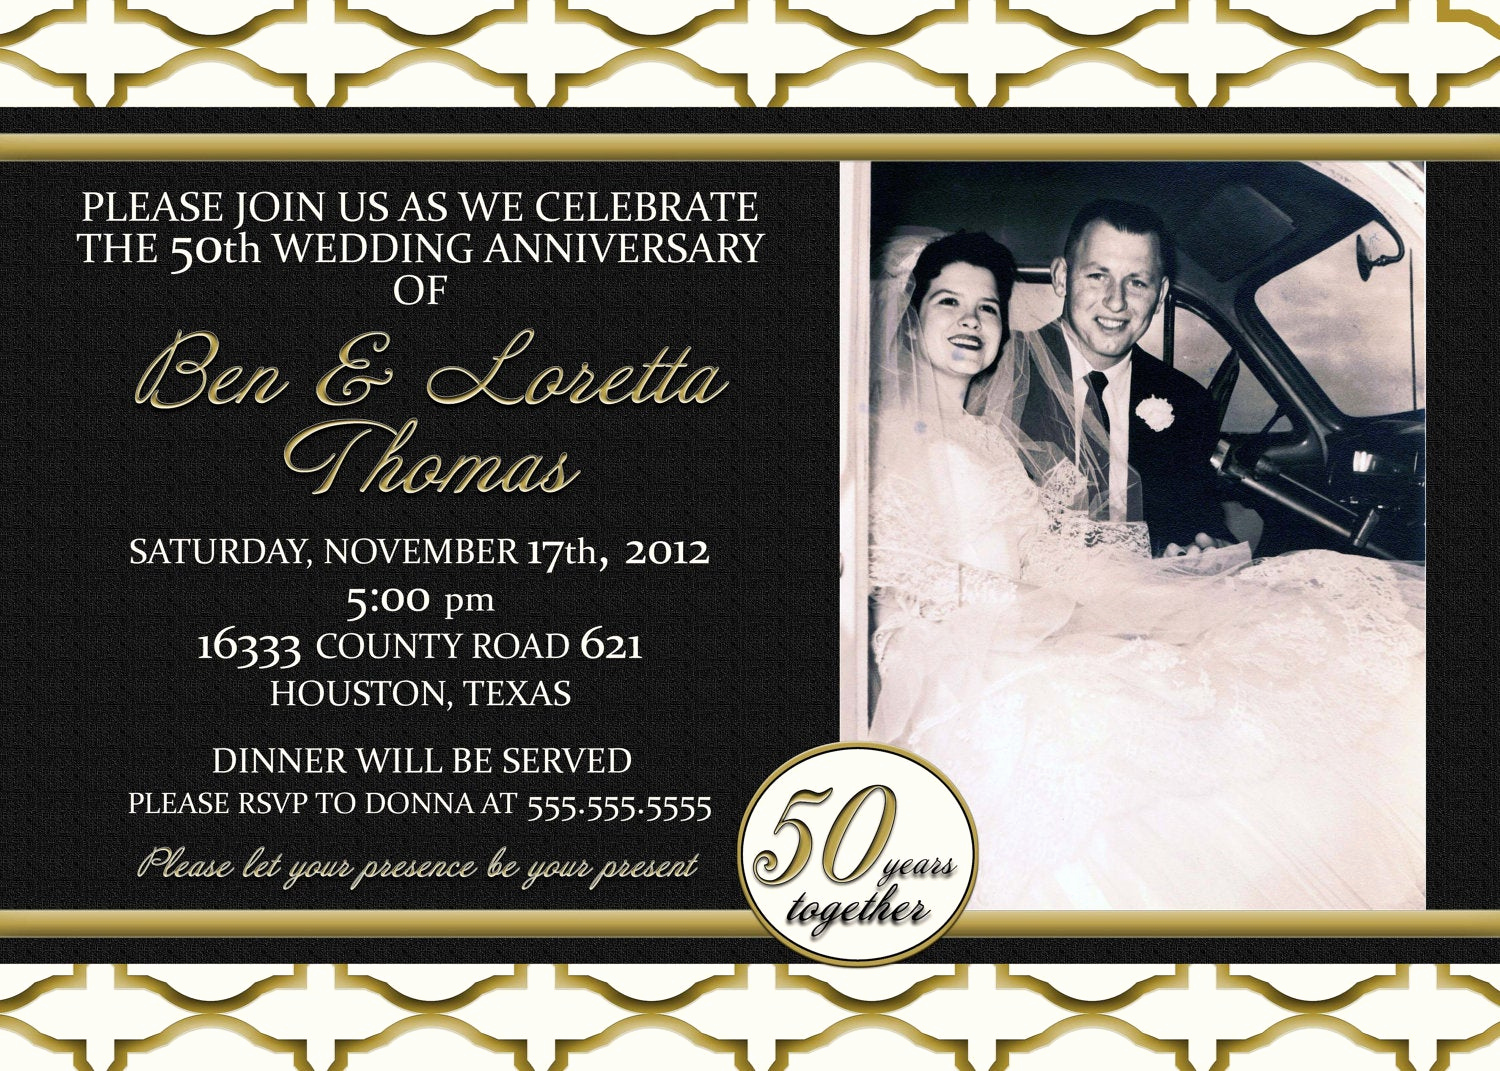 Wedding Anniversary Invitation Wording Awesome Custom Gold Black and Ivory 50th Anniversary Invitation